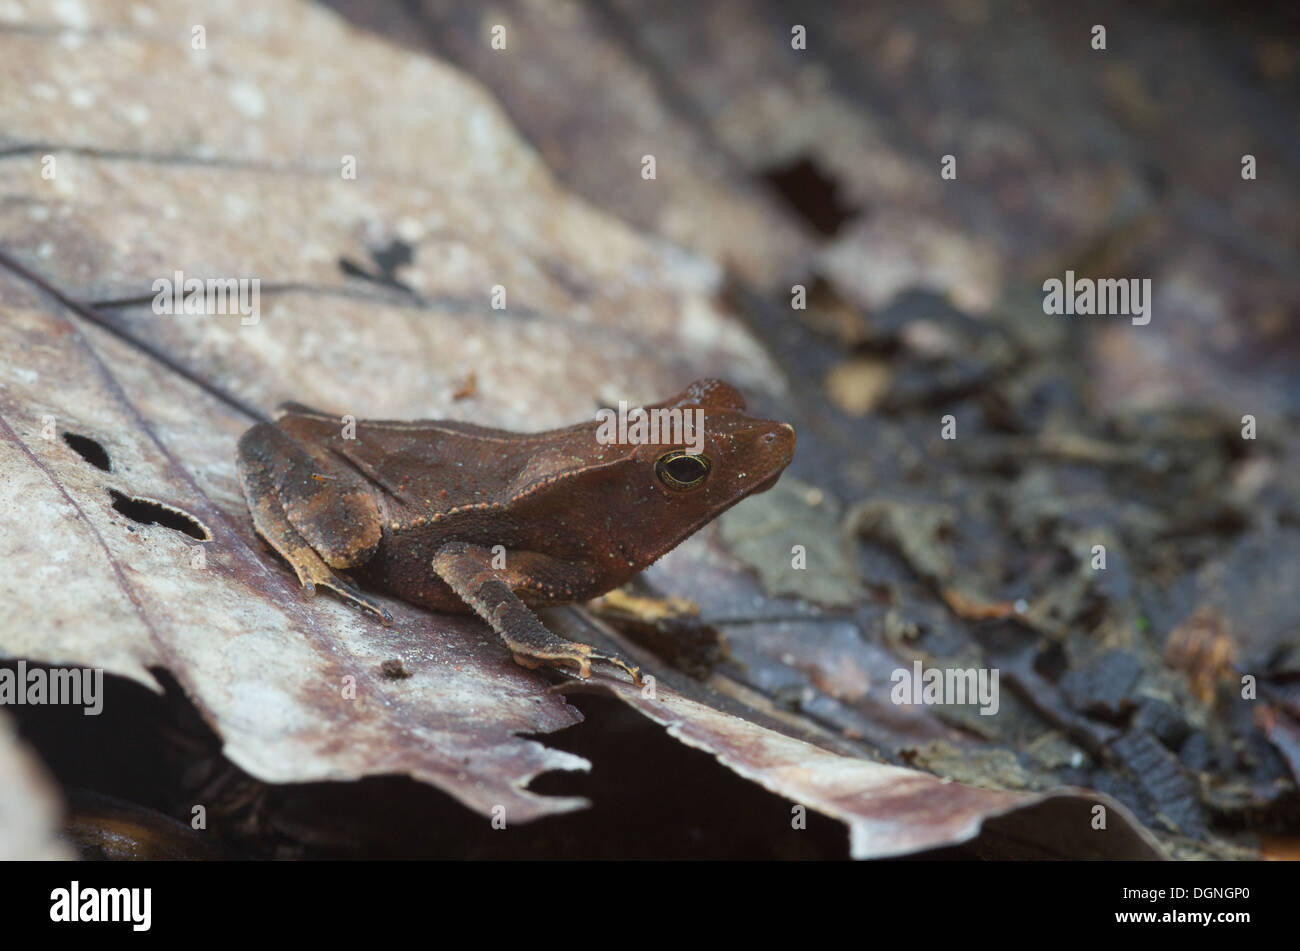 A Crested Forest Toad (Rhinella margaritifera) camouflaged in the leaf litter in the Amazonian rainforest in Loreto, Peru. - Stock Image